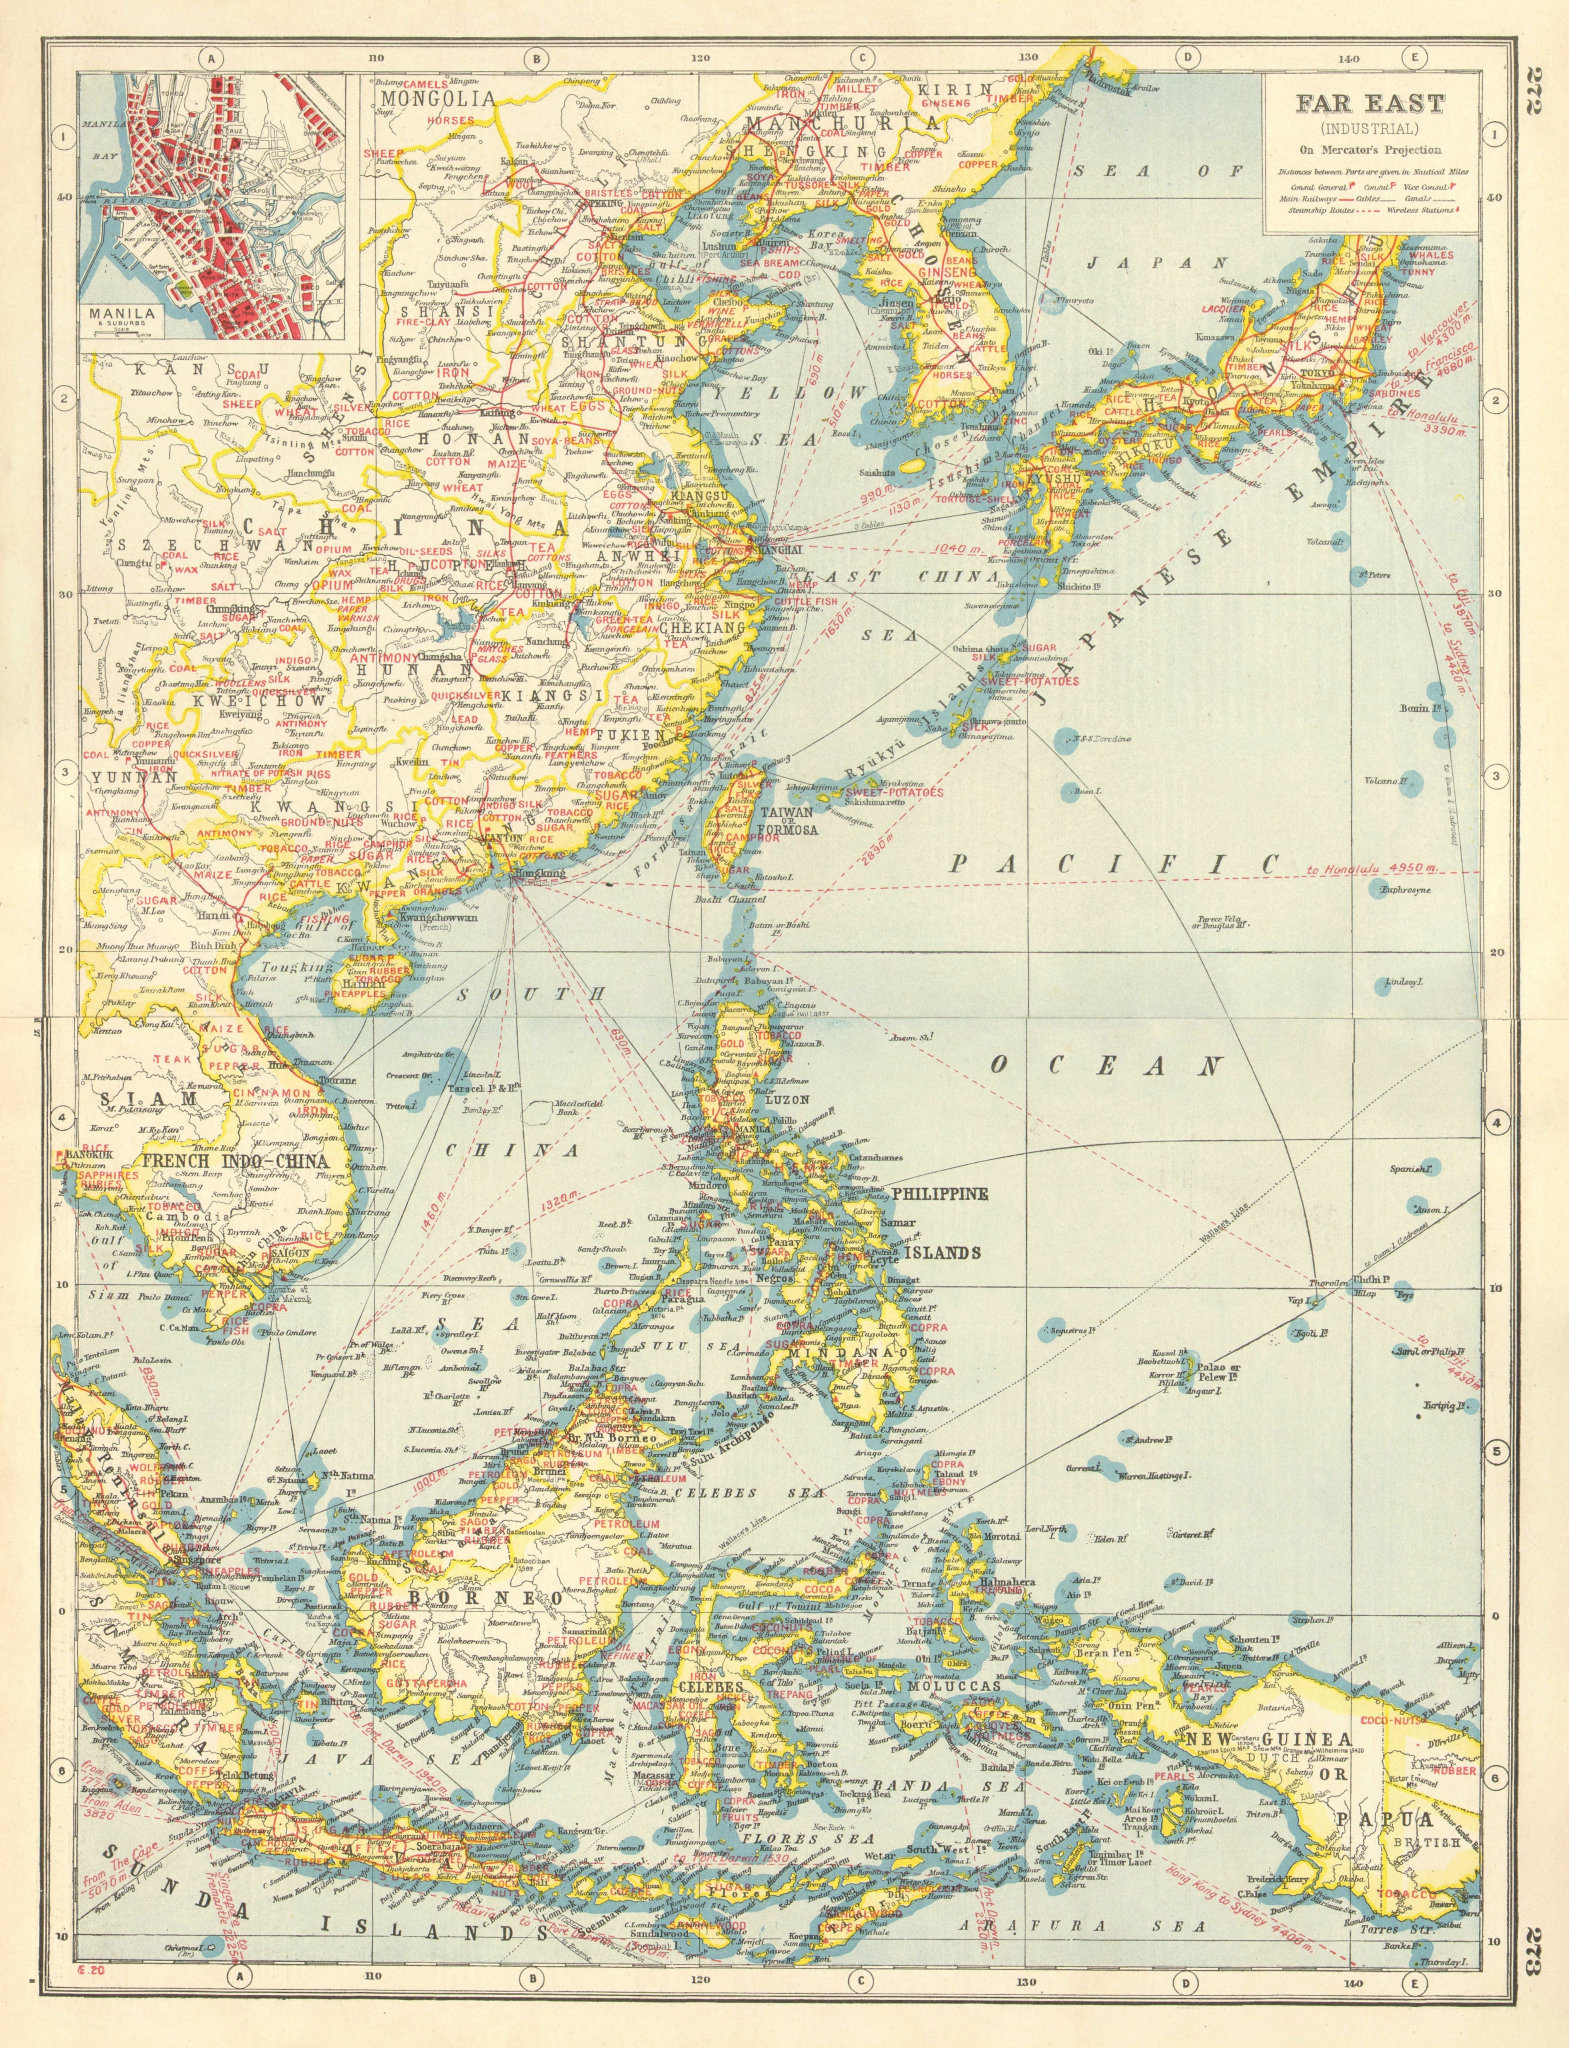 Associate Product EAST ASIA INDUSTRIES. China Korea East Indies Philippines. Manila plan 1920 map